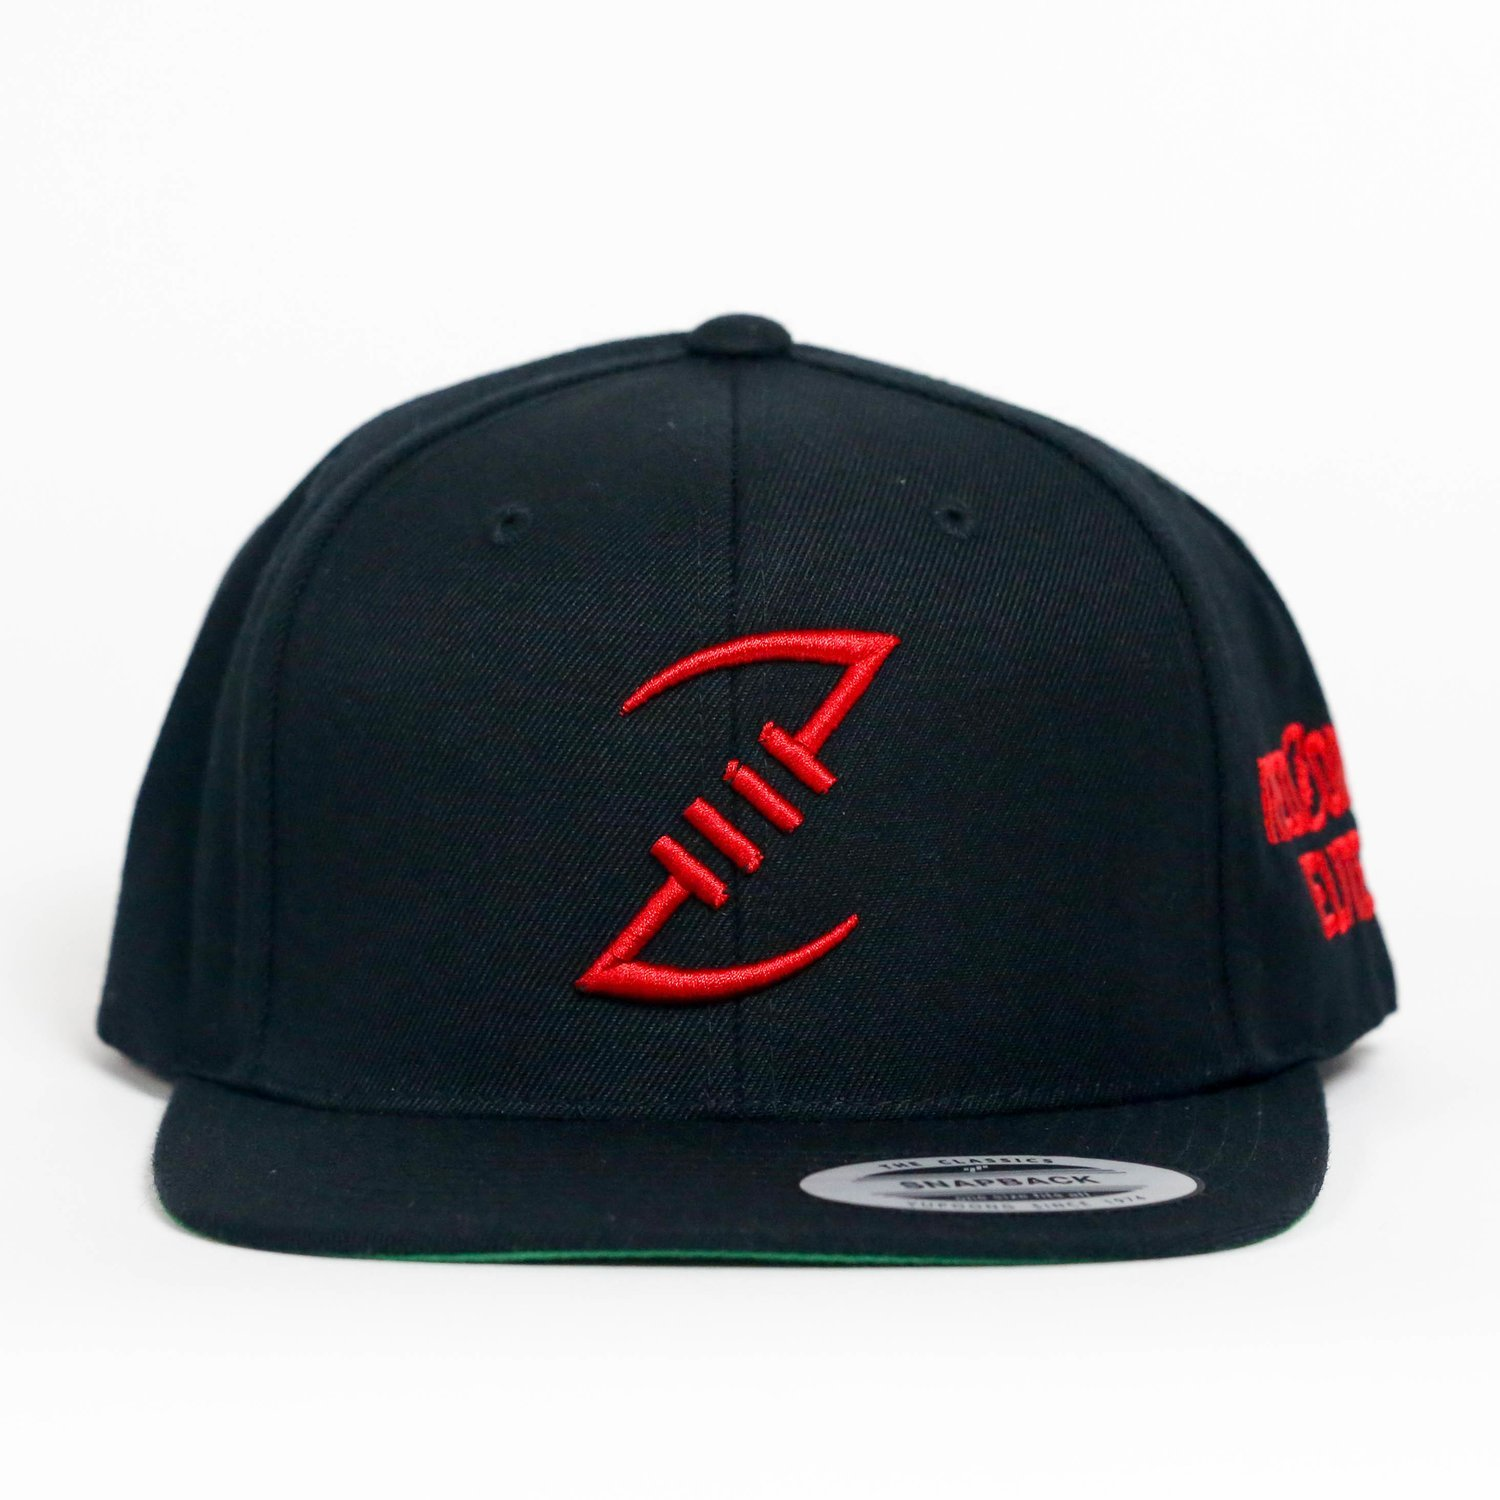 REDZONE ELITE SNAPBACK (Color Options)